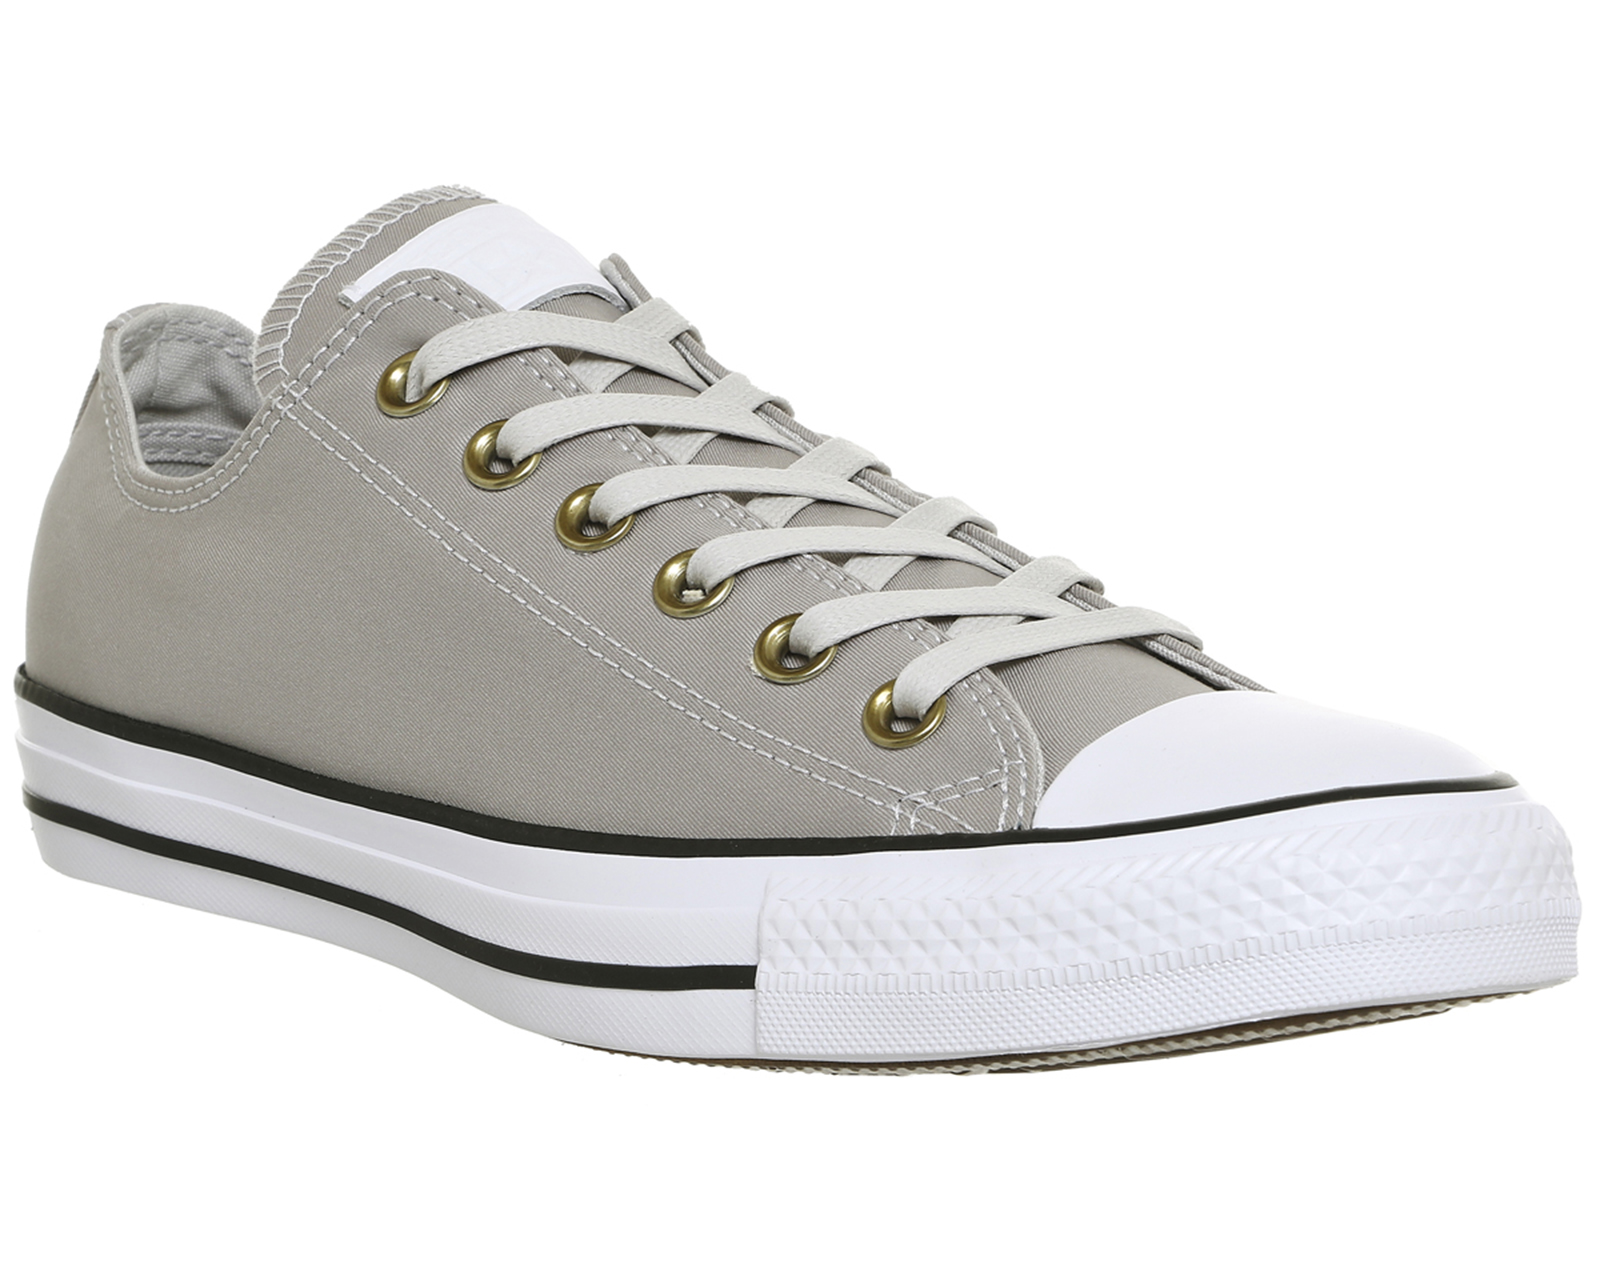 Star Ebay N8nm0wv Trainers Mouse White Low Converse Q8s5wfx All Shoes R54q3AjL